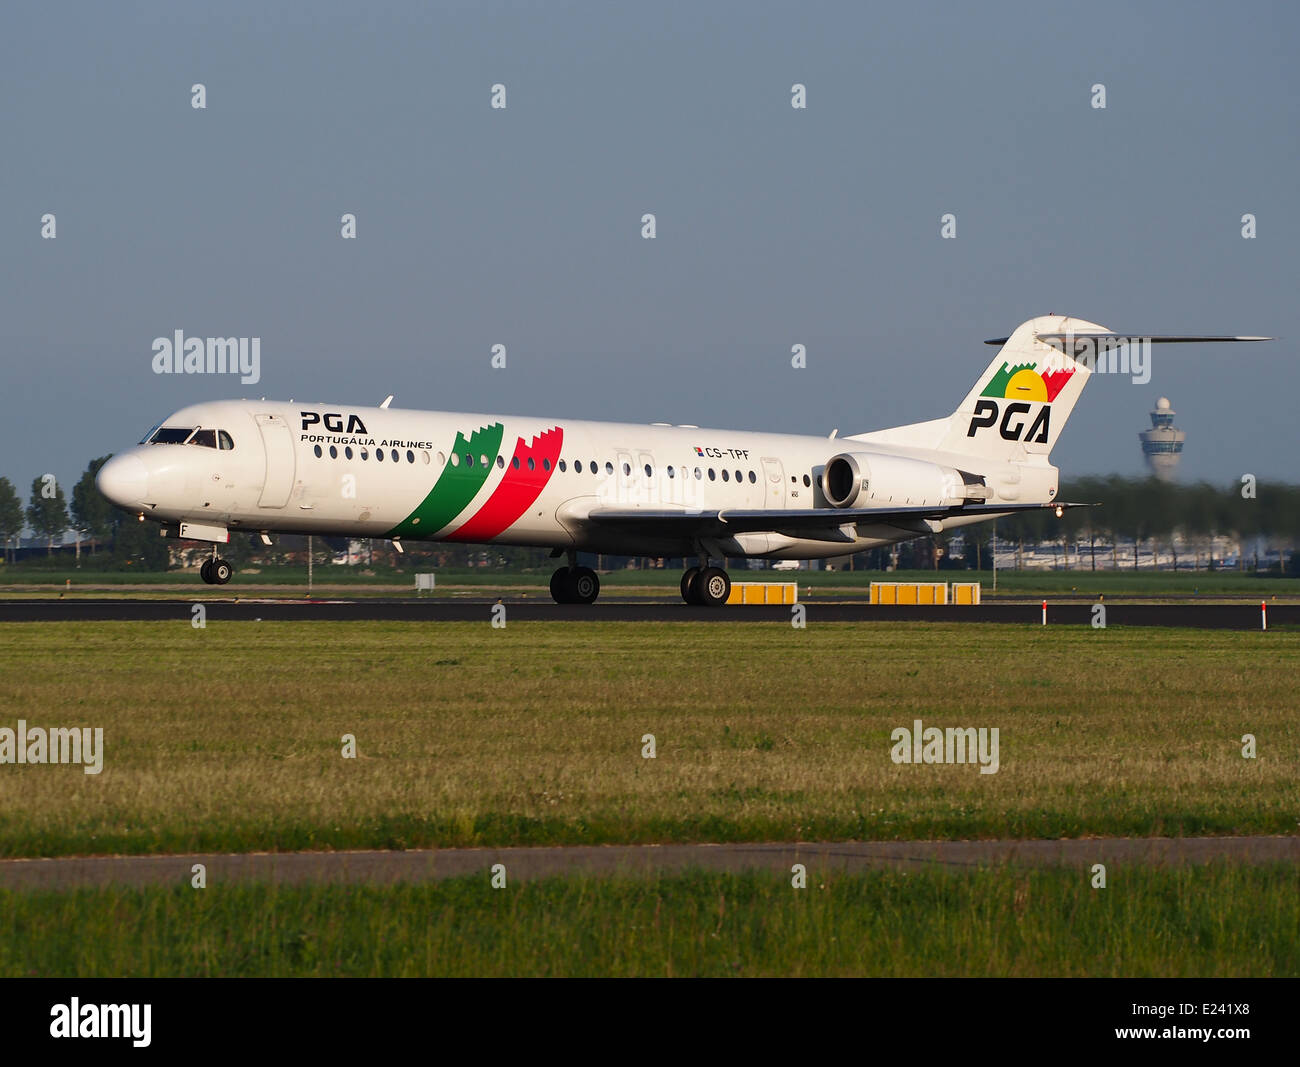 CS-TPF PGA Portugalia Fokker 100 take-off from Schiphol (AMS - EHAM), The Netherlands, 17may2014, pic-1 - Stock Image